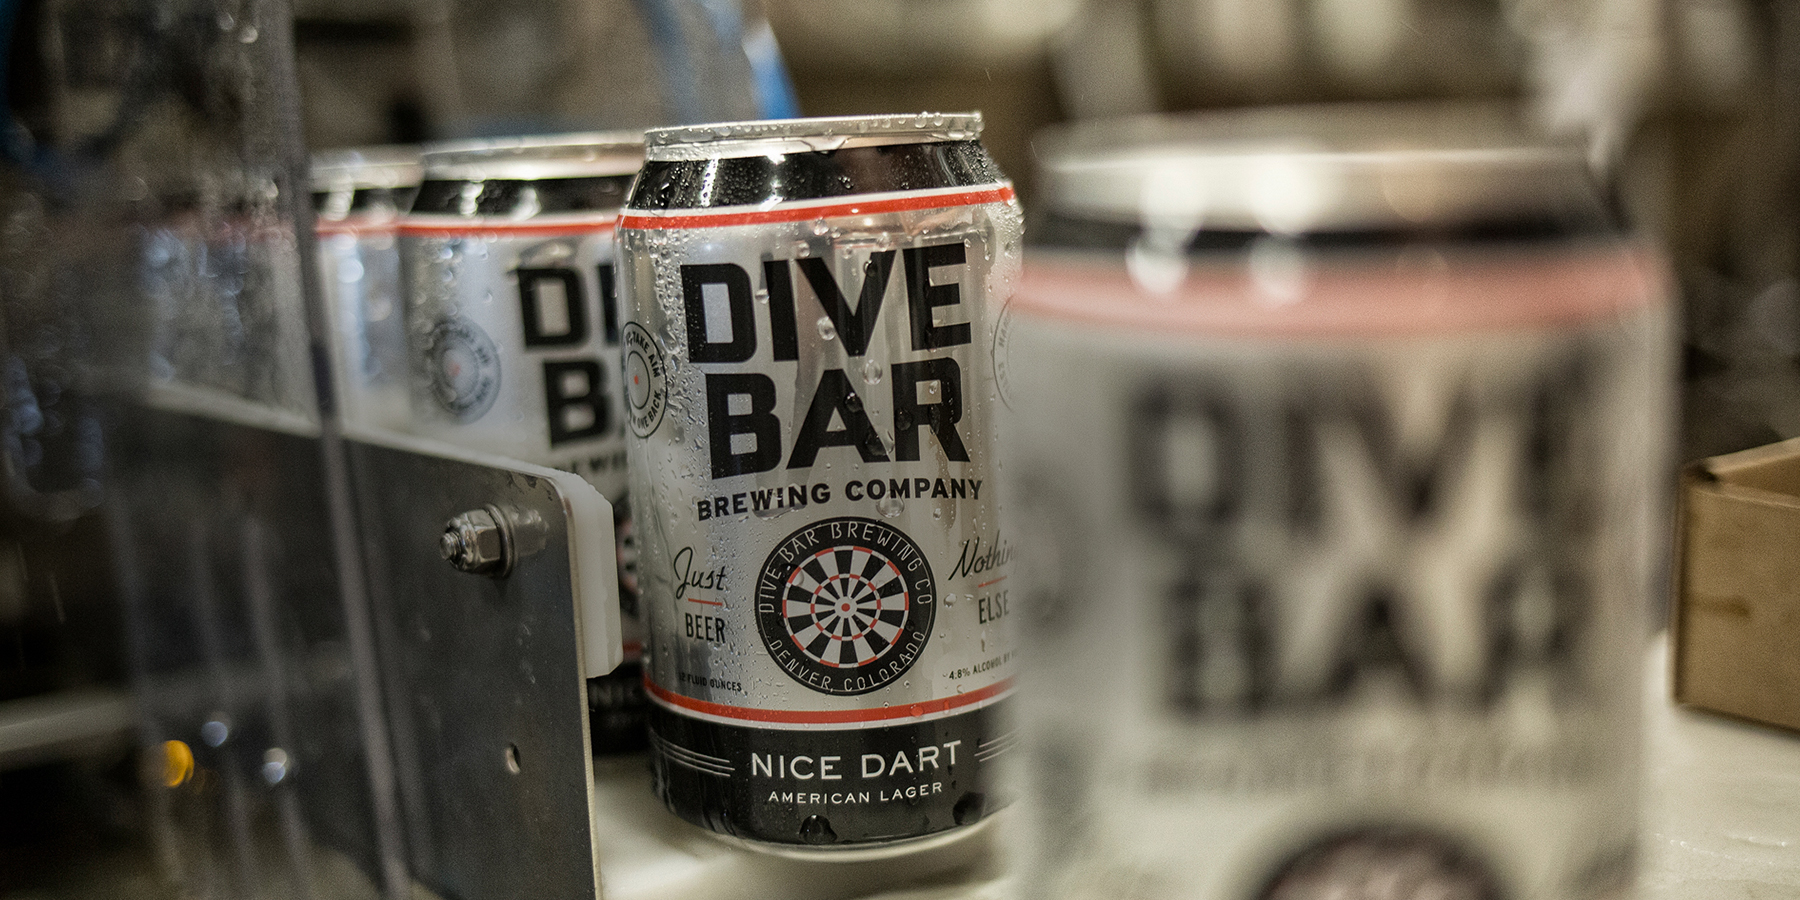 Dive Bar Brewing Company Case Study